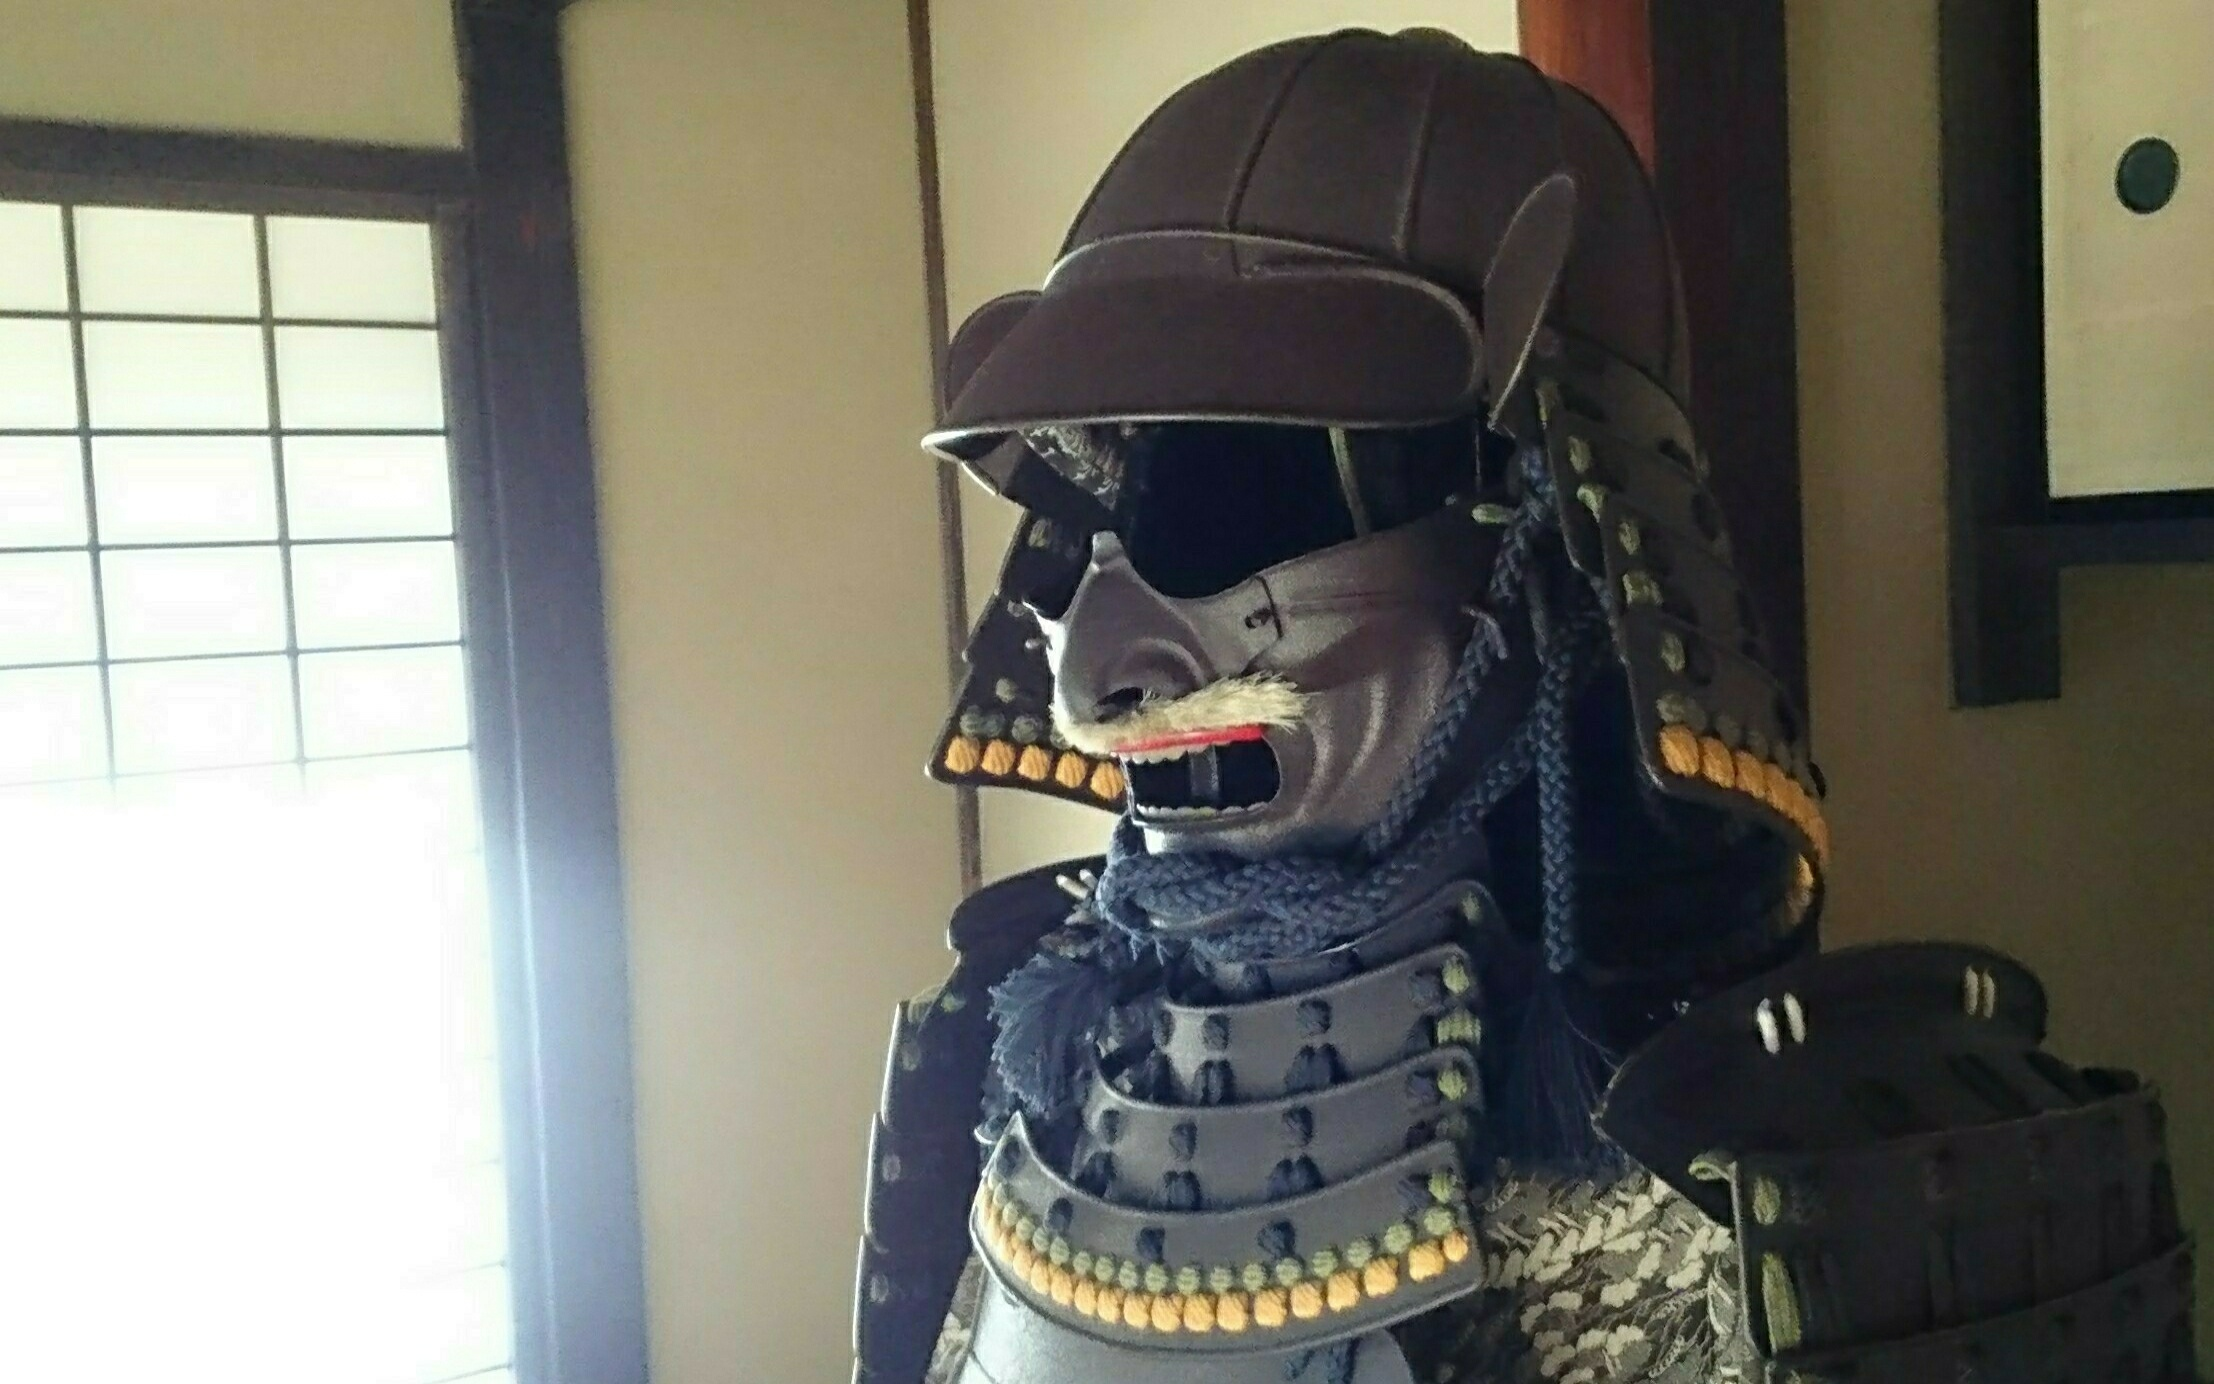 Samurai armour exhibited in the Zashiki reception room in the former residence of the Tajima family.